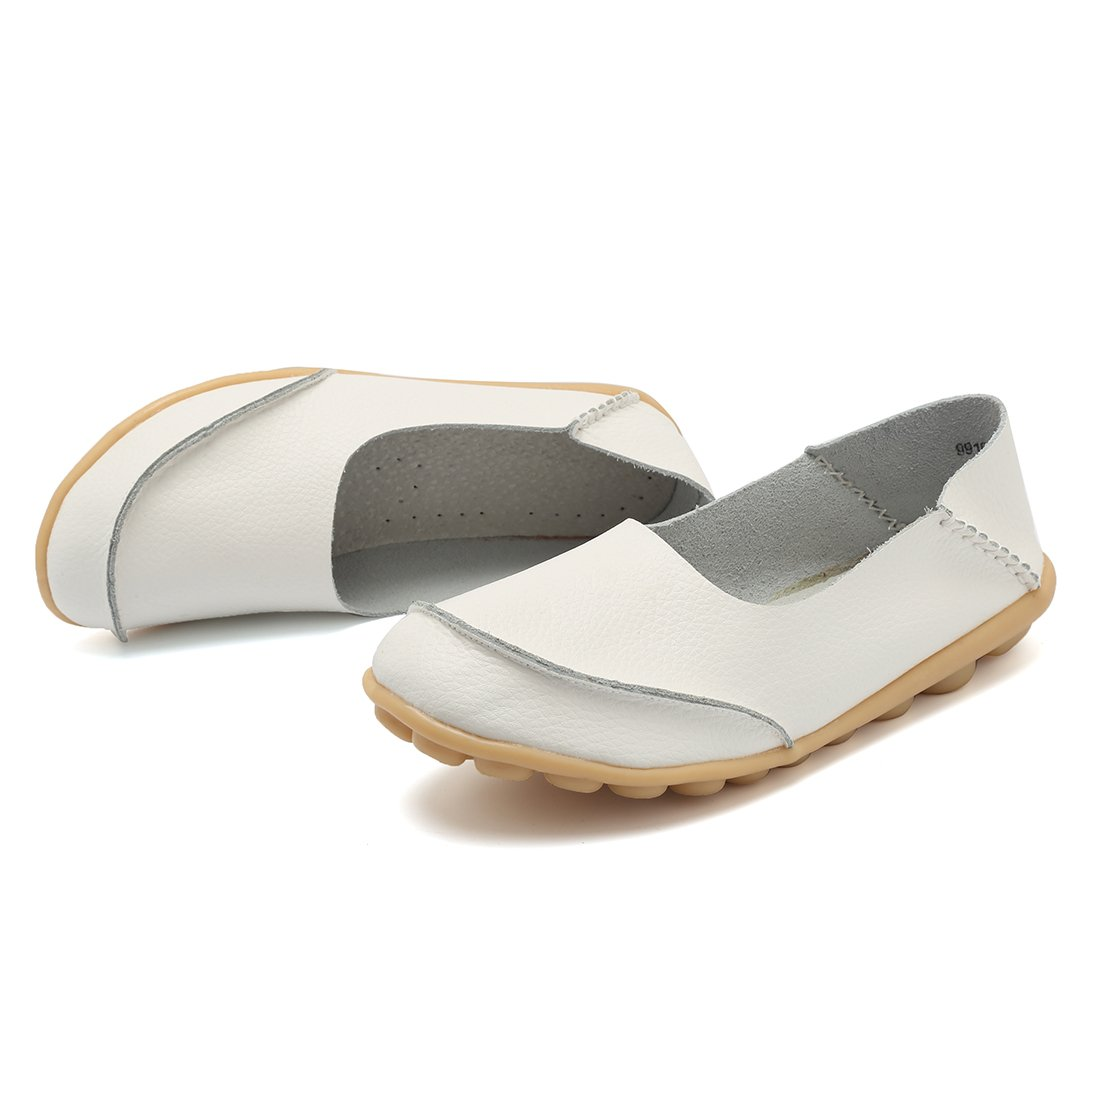 KISFLY Soft Leather Slip on White Loafers Size 7 Breathable Lightweight Shoes Moccasins Wild Driving Casual Flats